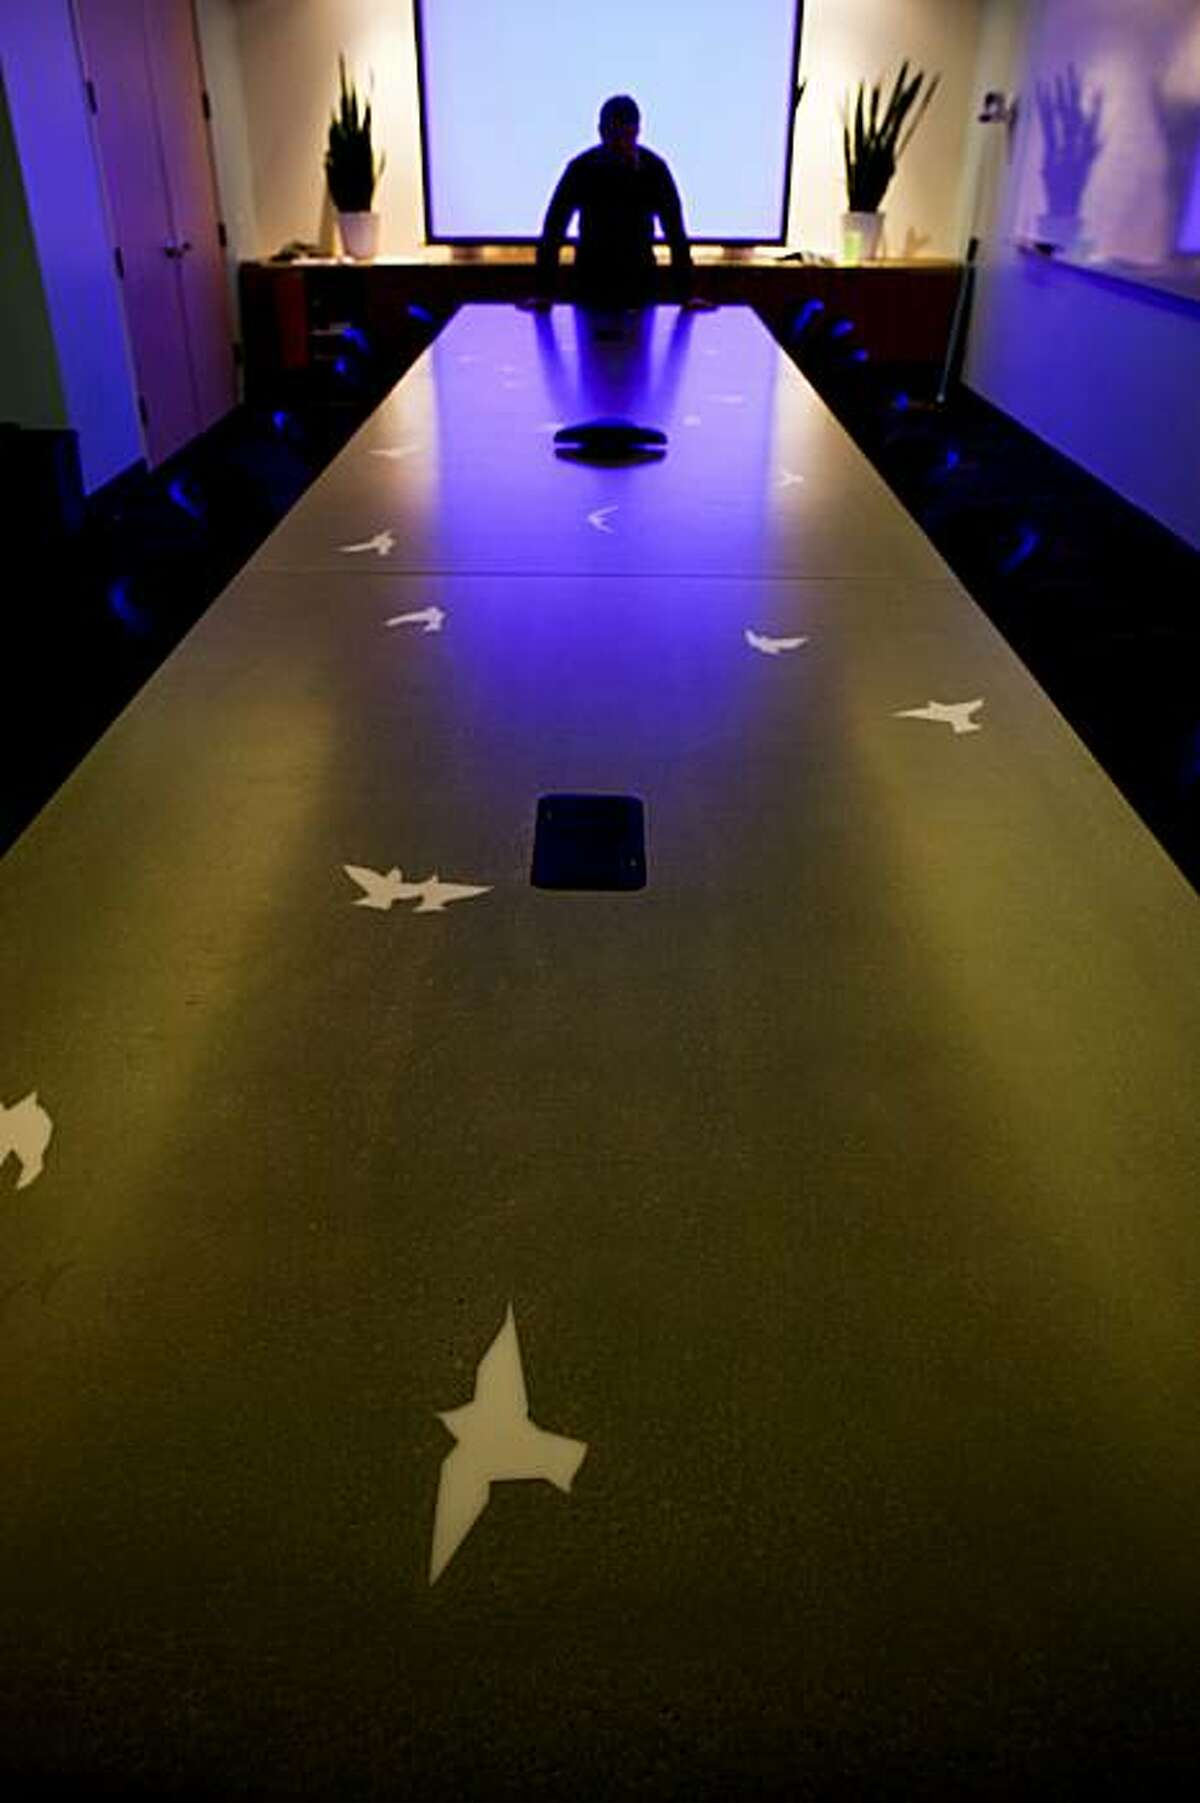 A table with inlaid acrylic birds made by Concrete Works sits in one of the conference rooms the new Twitter offices seen in San Francisco, Calif. on Wednesday, Dec. 16, 2009.